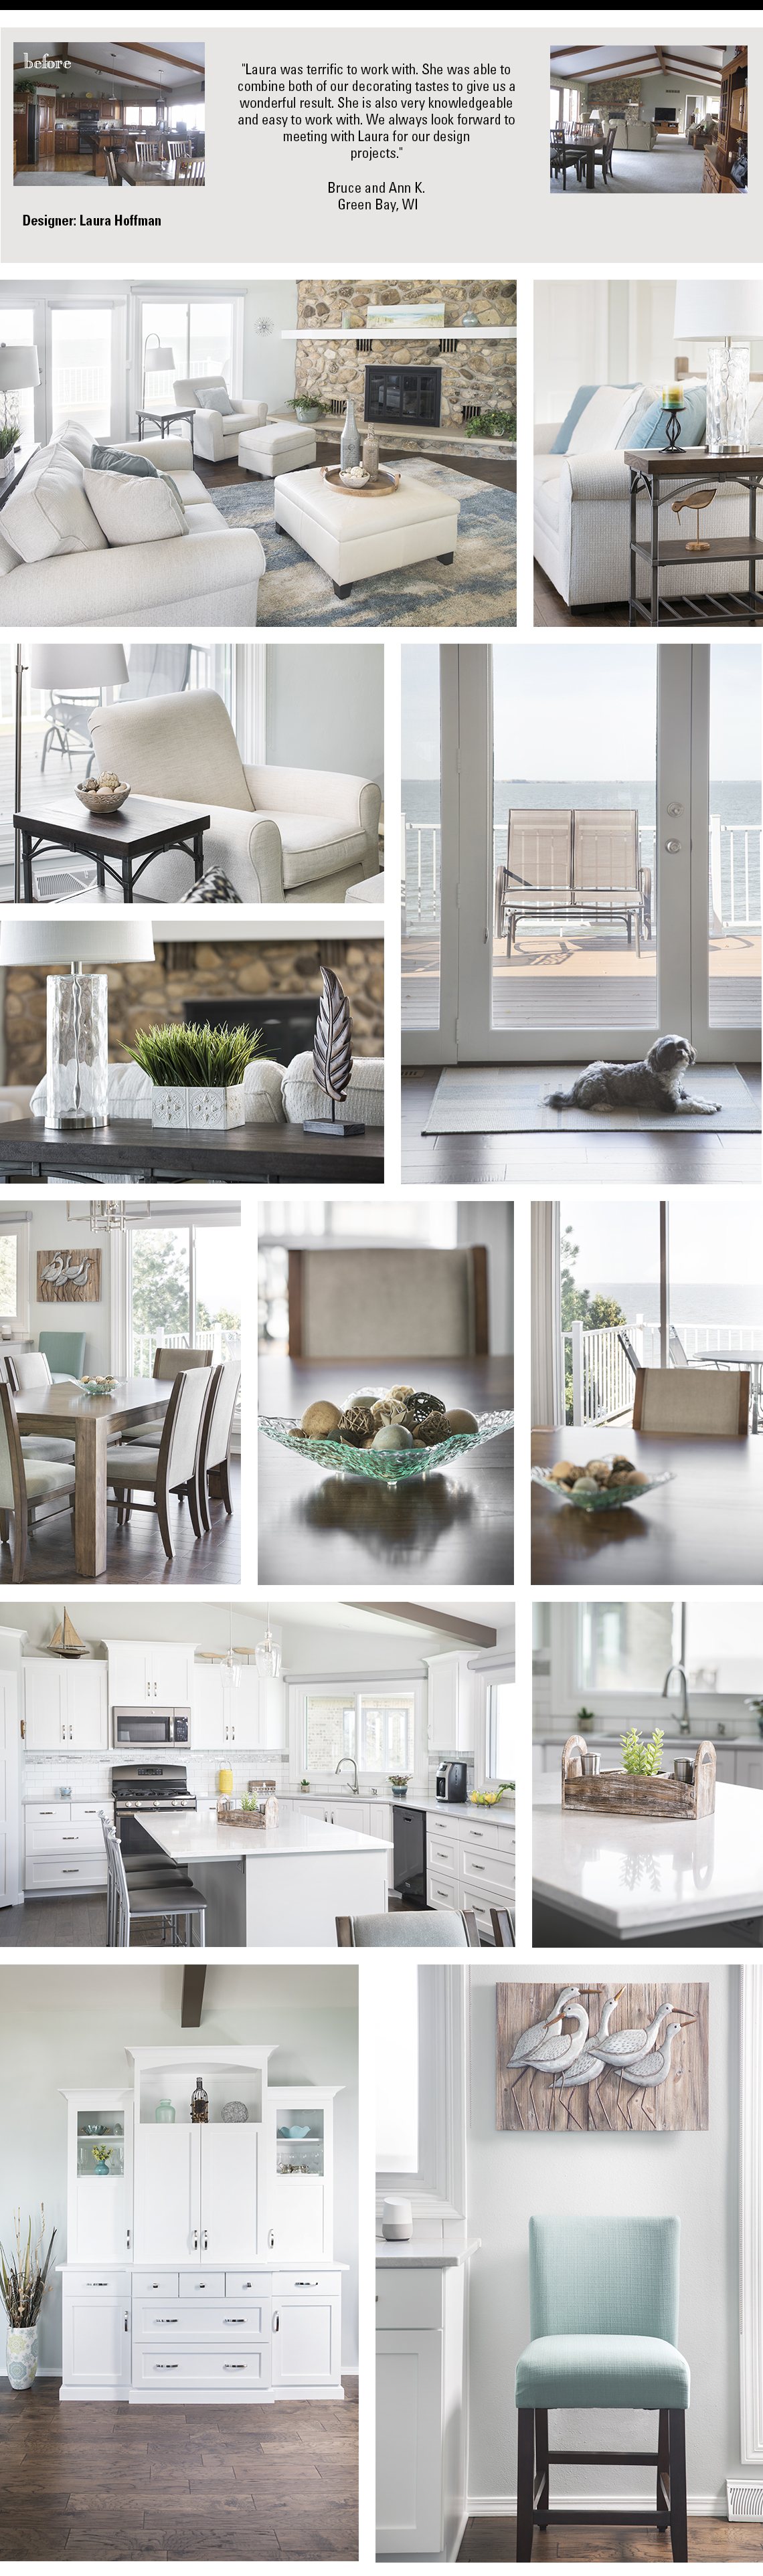 Steinhafels - Decorating Solutions - Before & Afters